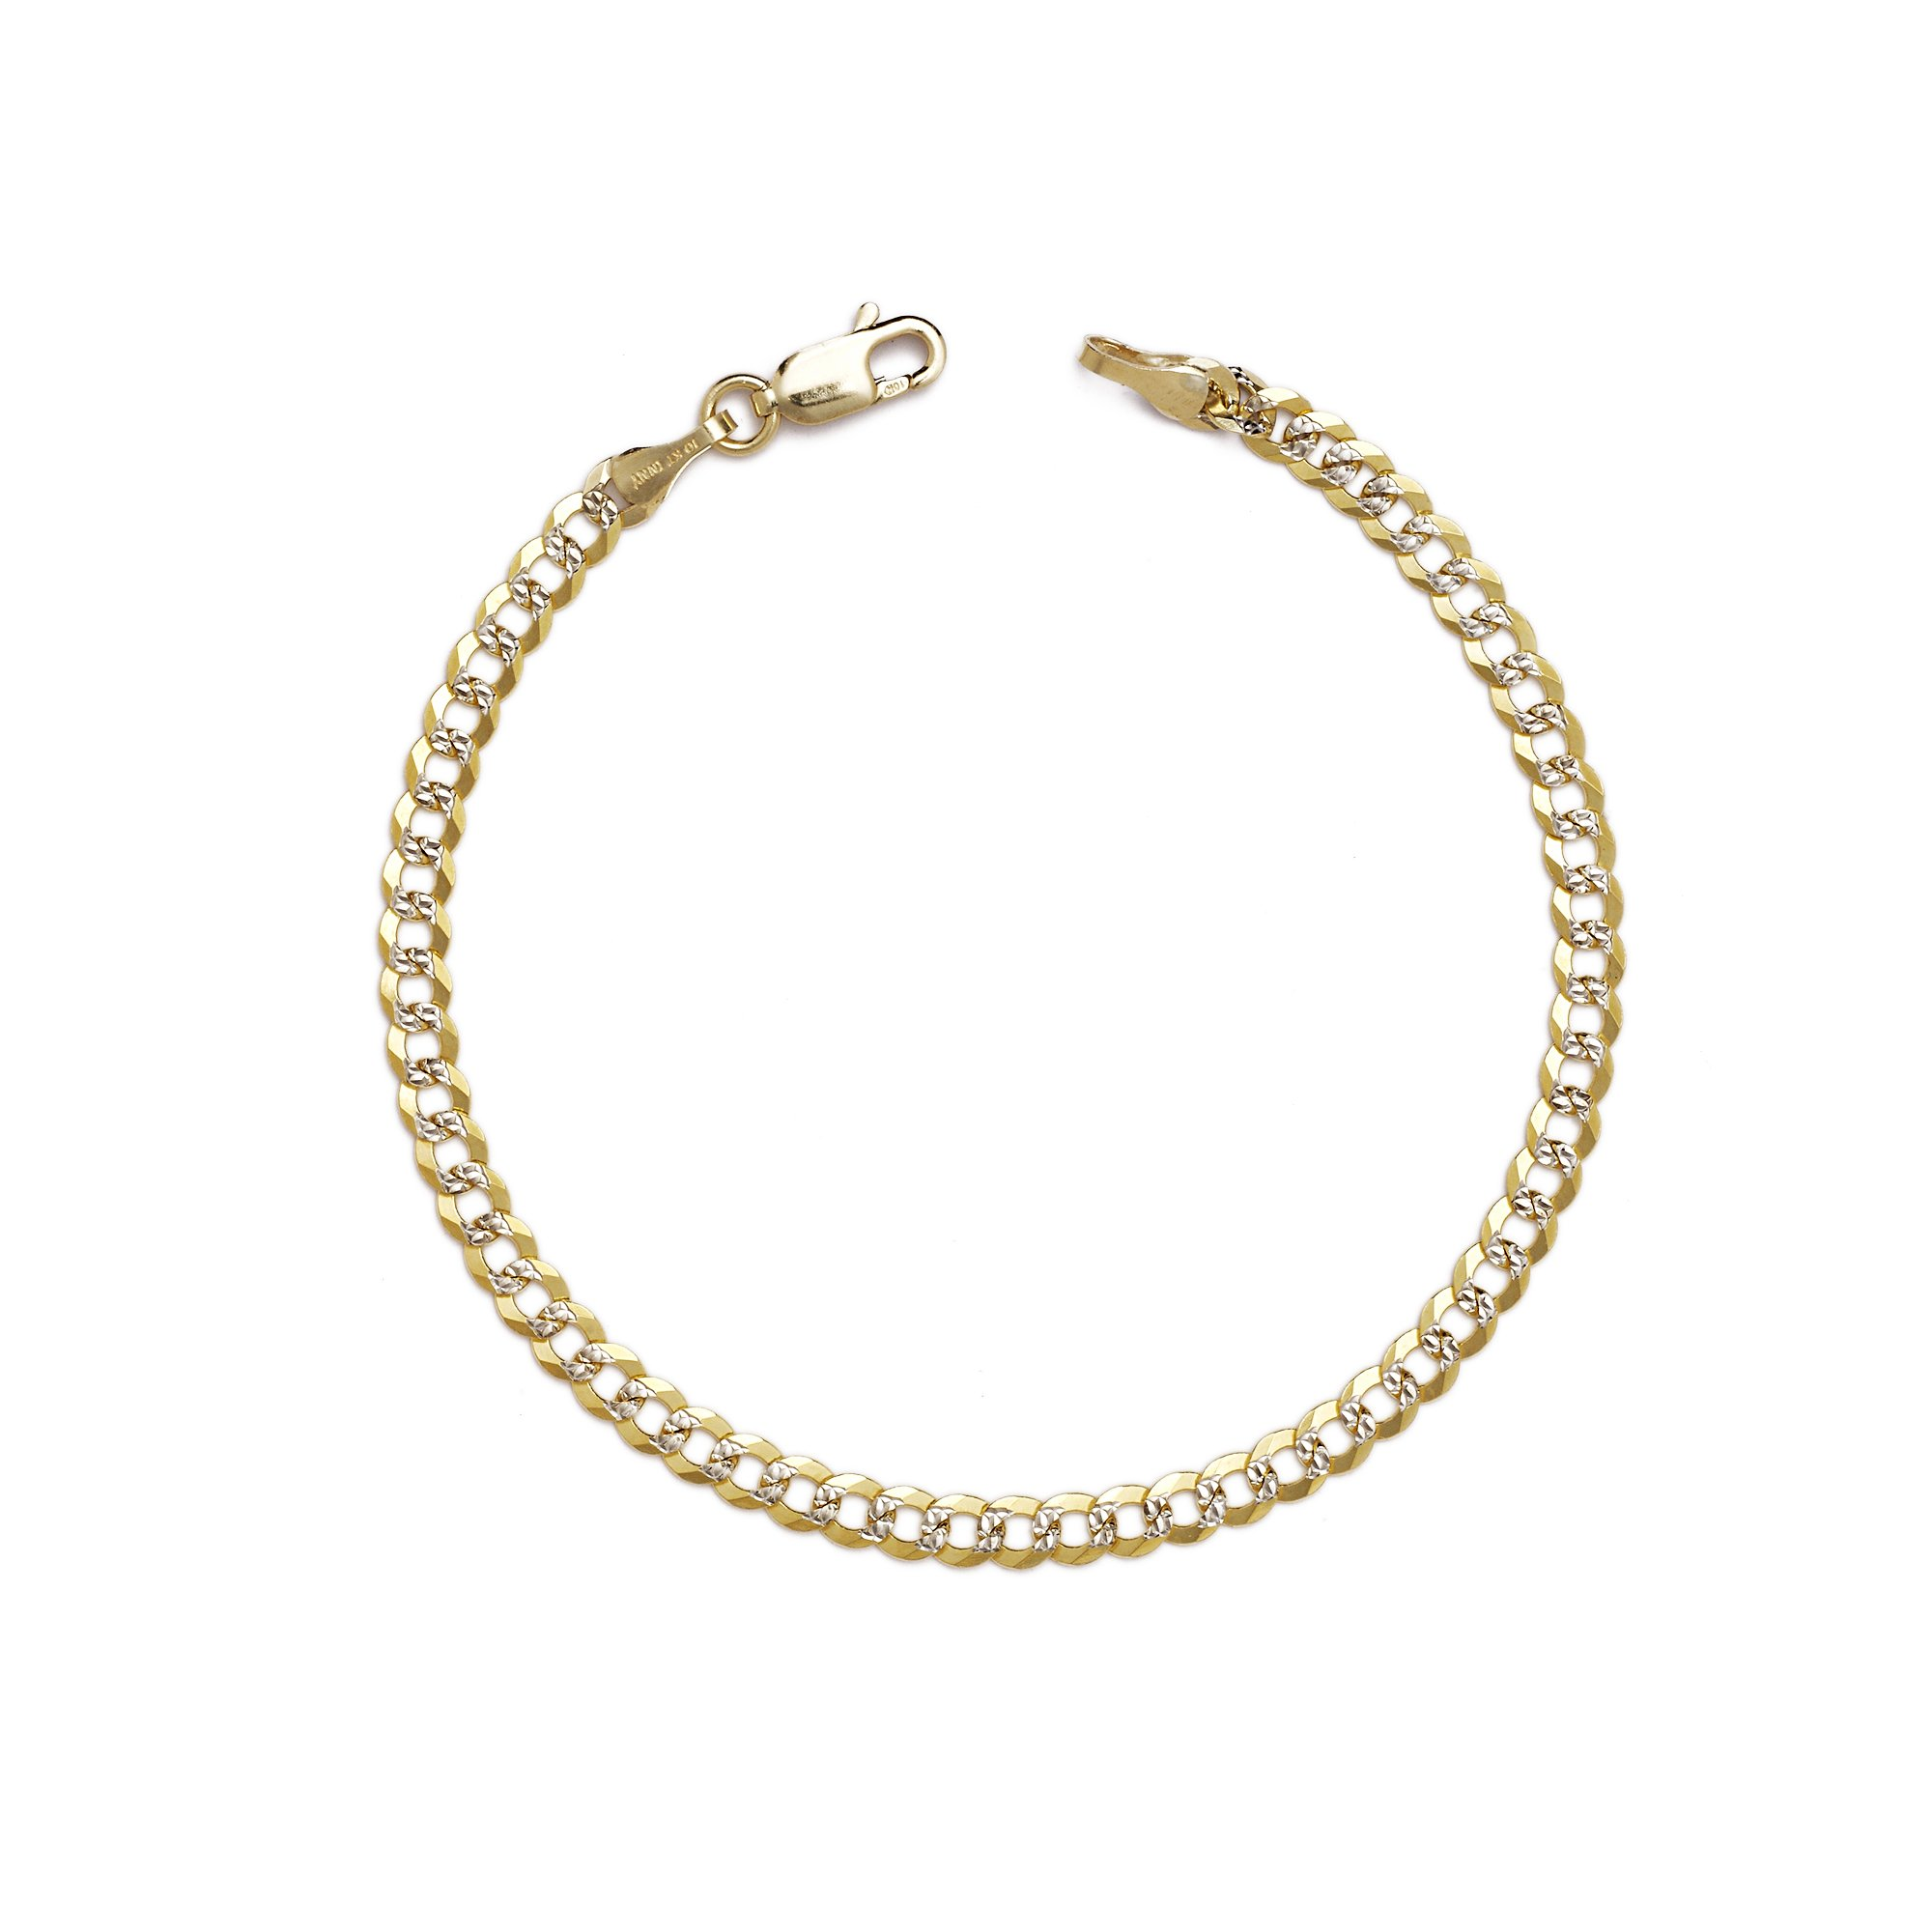 10 Inch 10k Two-Tone Gold Curb Cuban Chain Ankle Bracelet Anklet with White Pave, 0.16 Inch (4mm) by SL Gold Imports (Image #5)